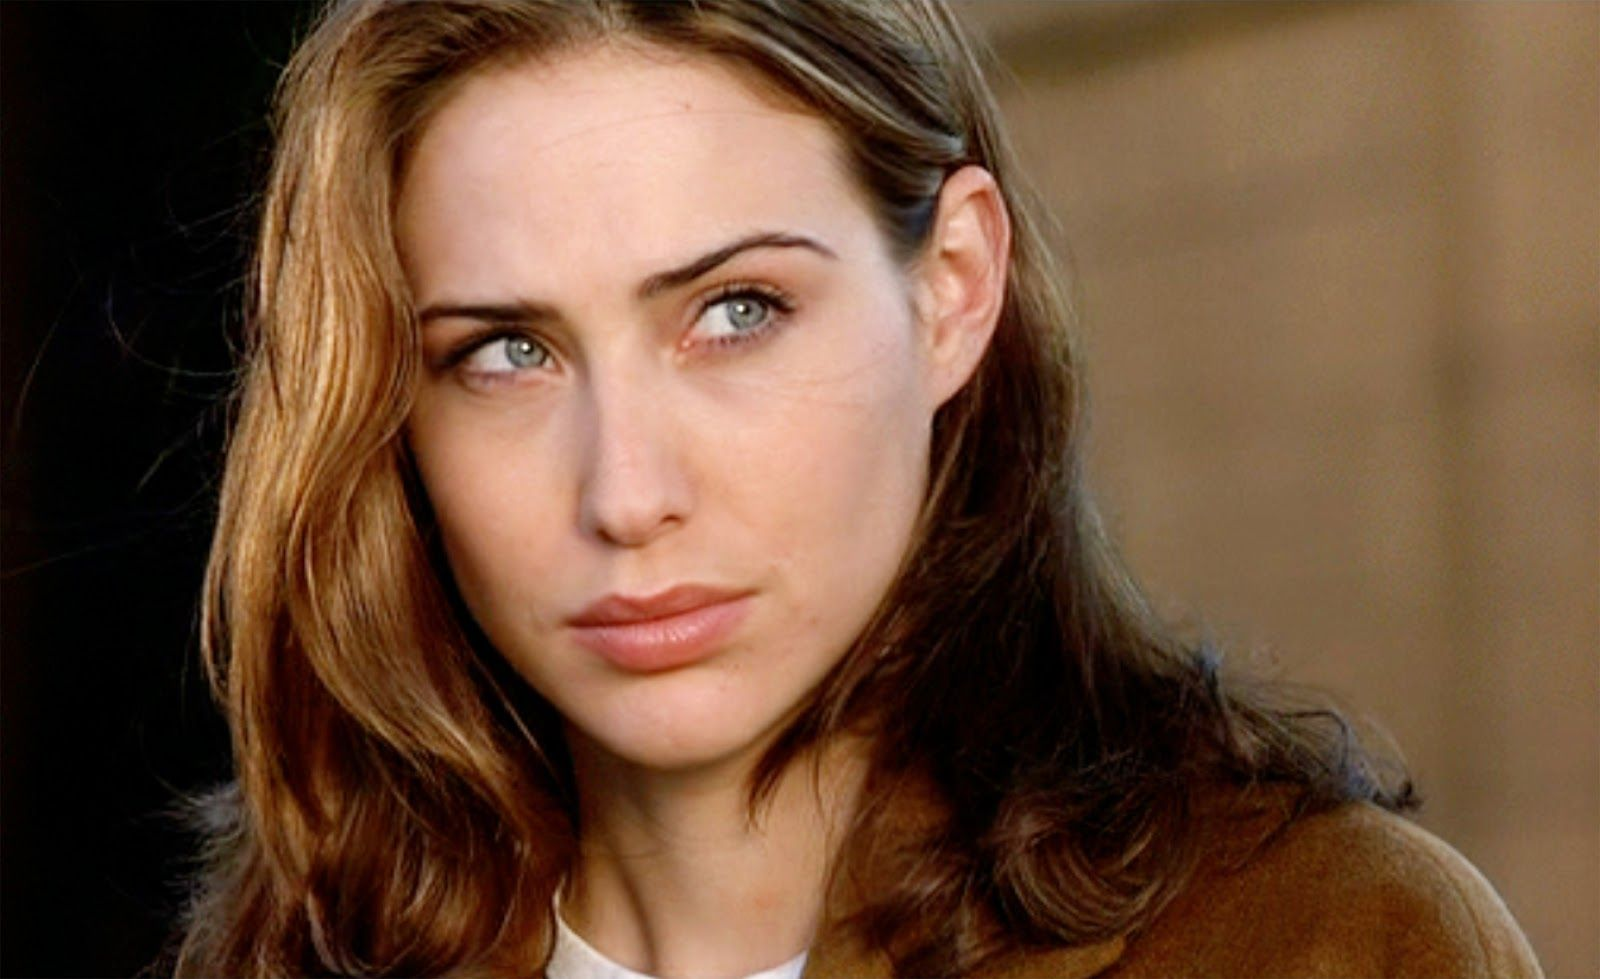 Sorry, not Claire forlani free porn video consider